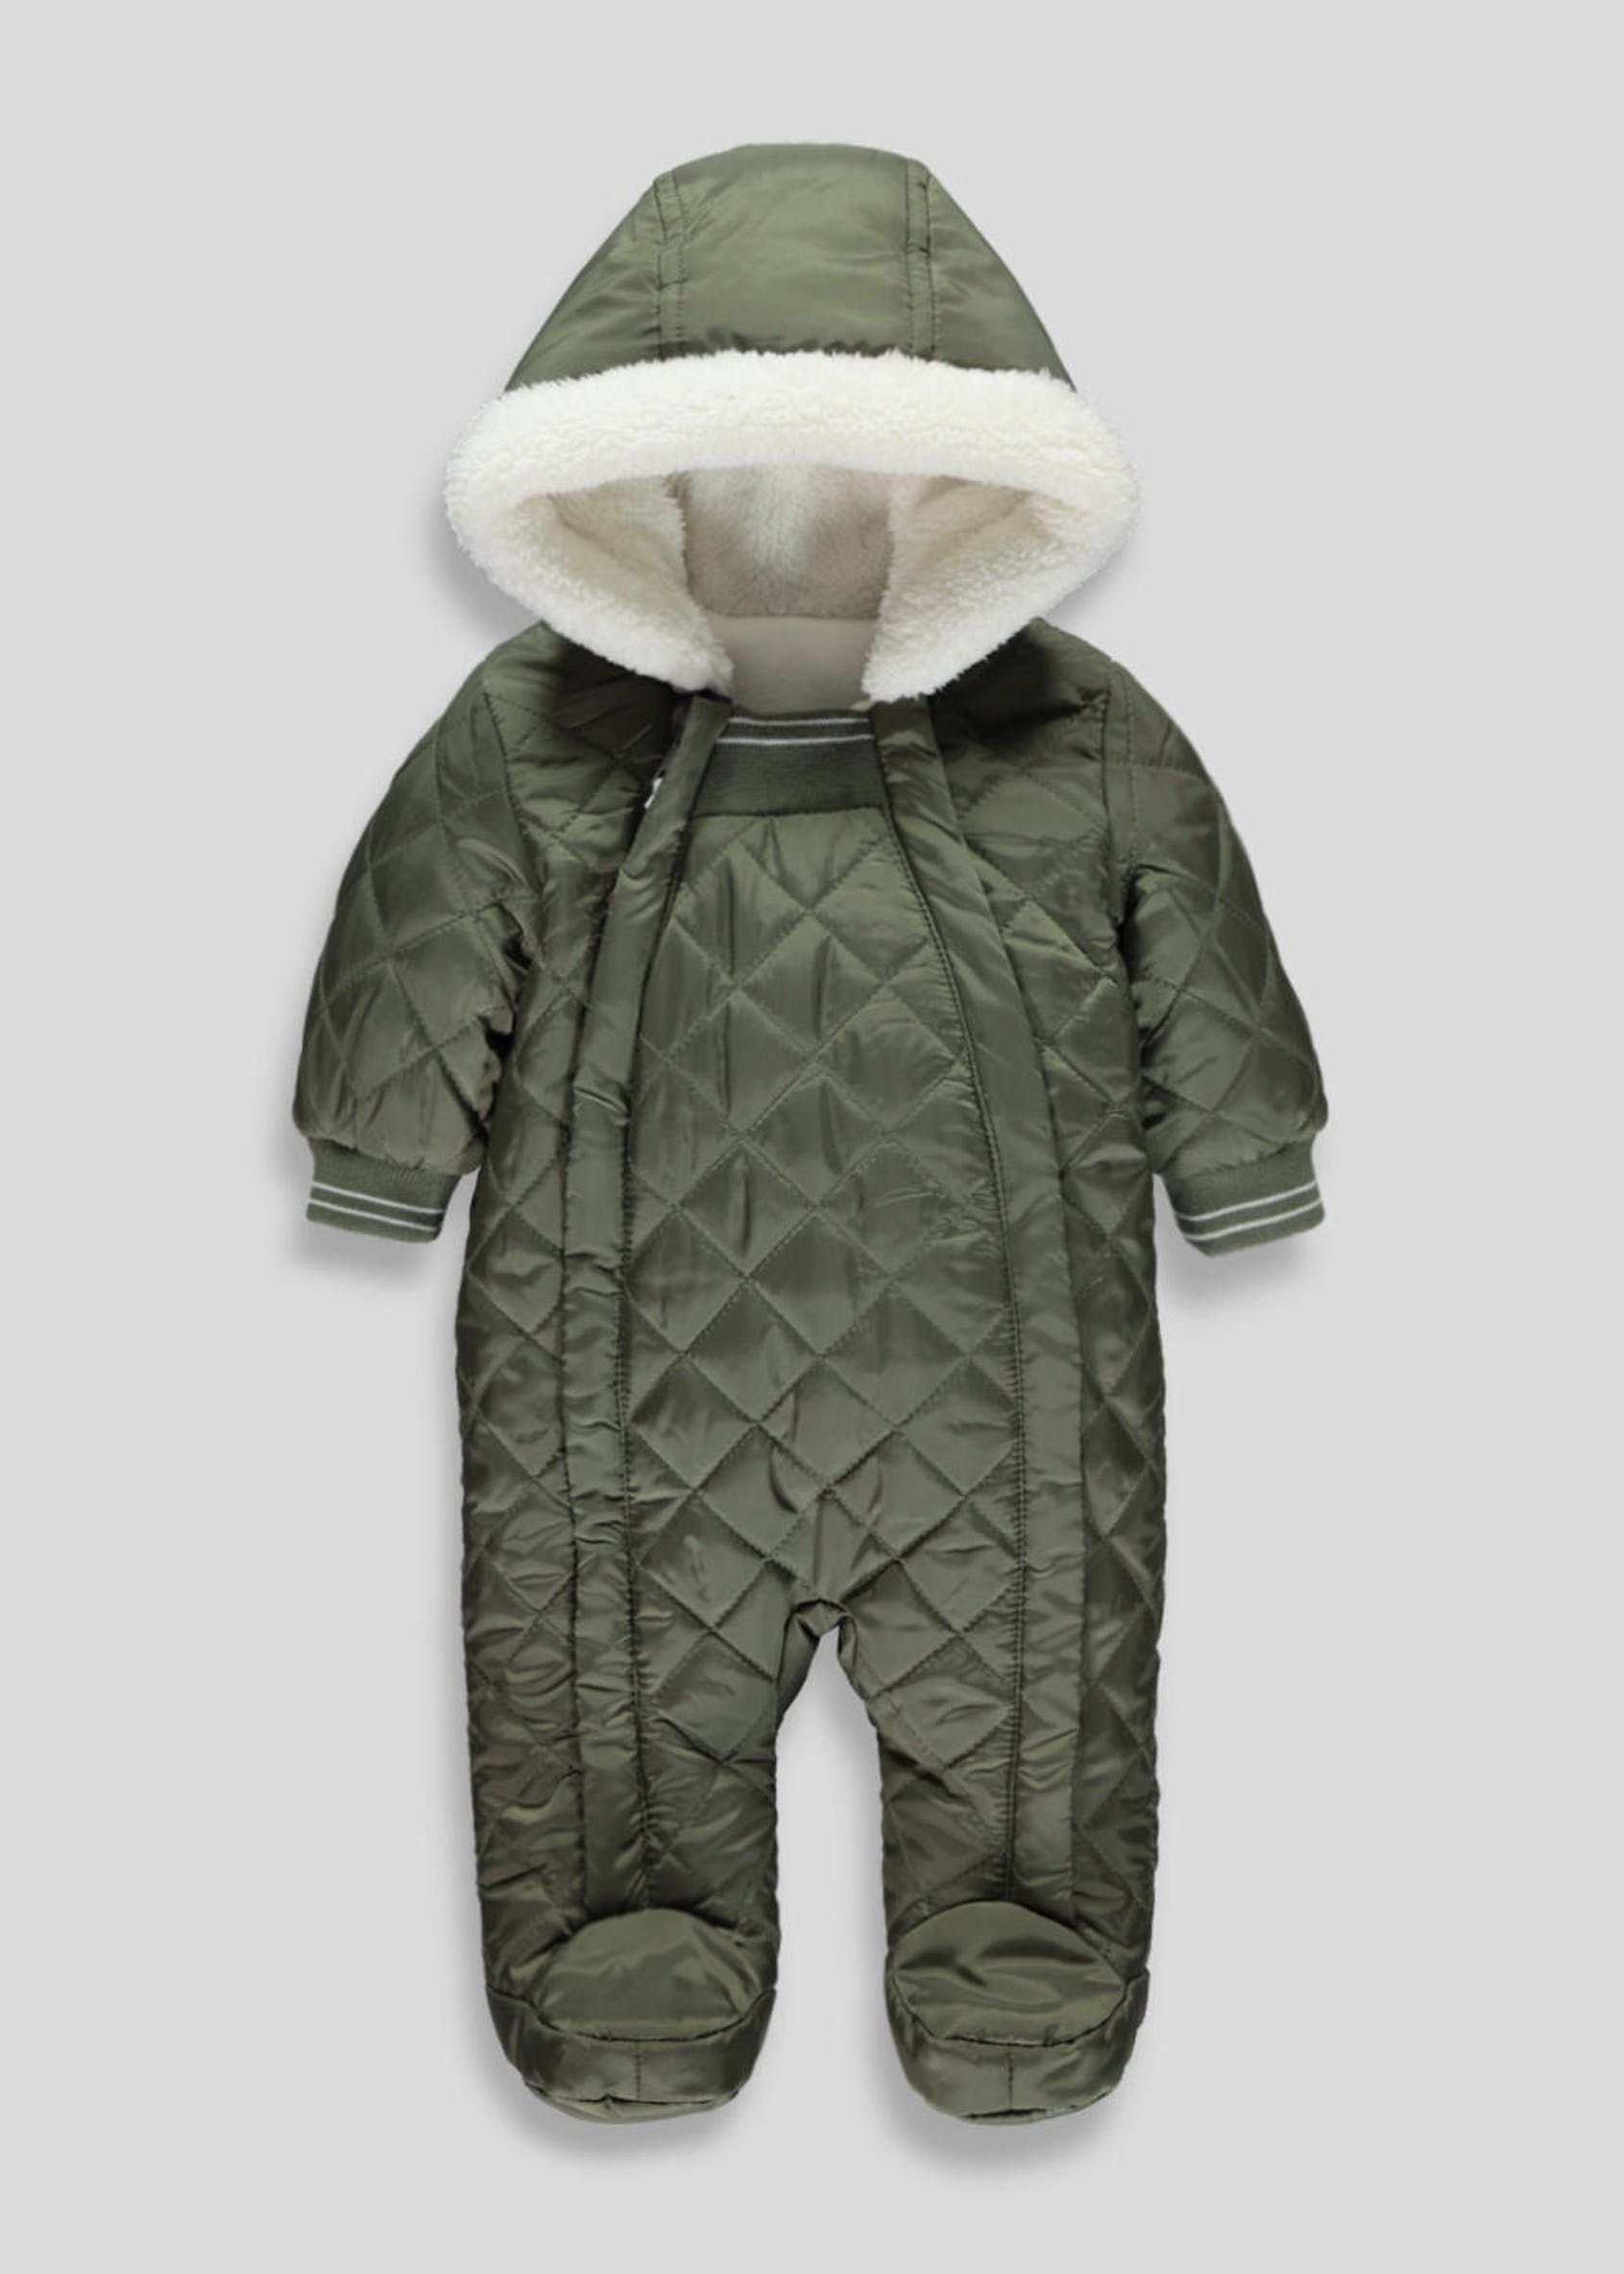 0bfde5de Unisex Quilted Snowsuit (Tiny Baby-18mths) | Kiddos | Pinterest ...